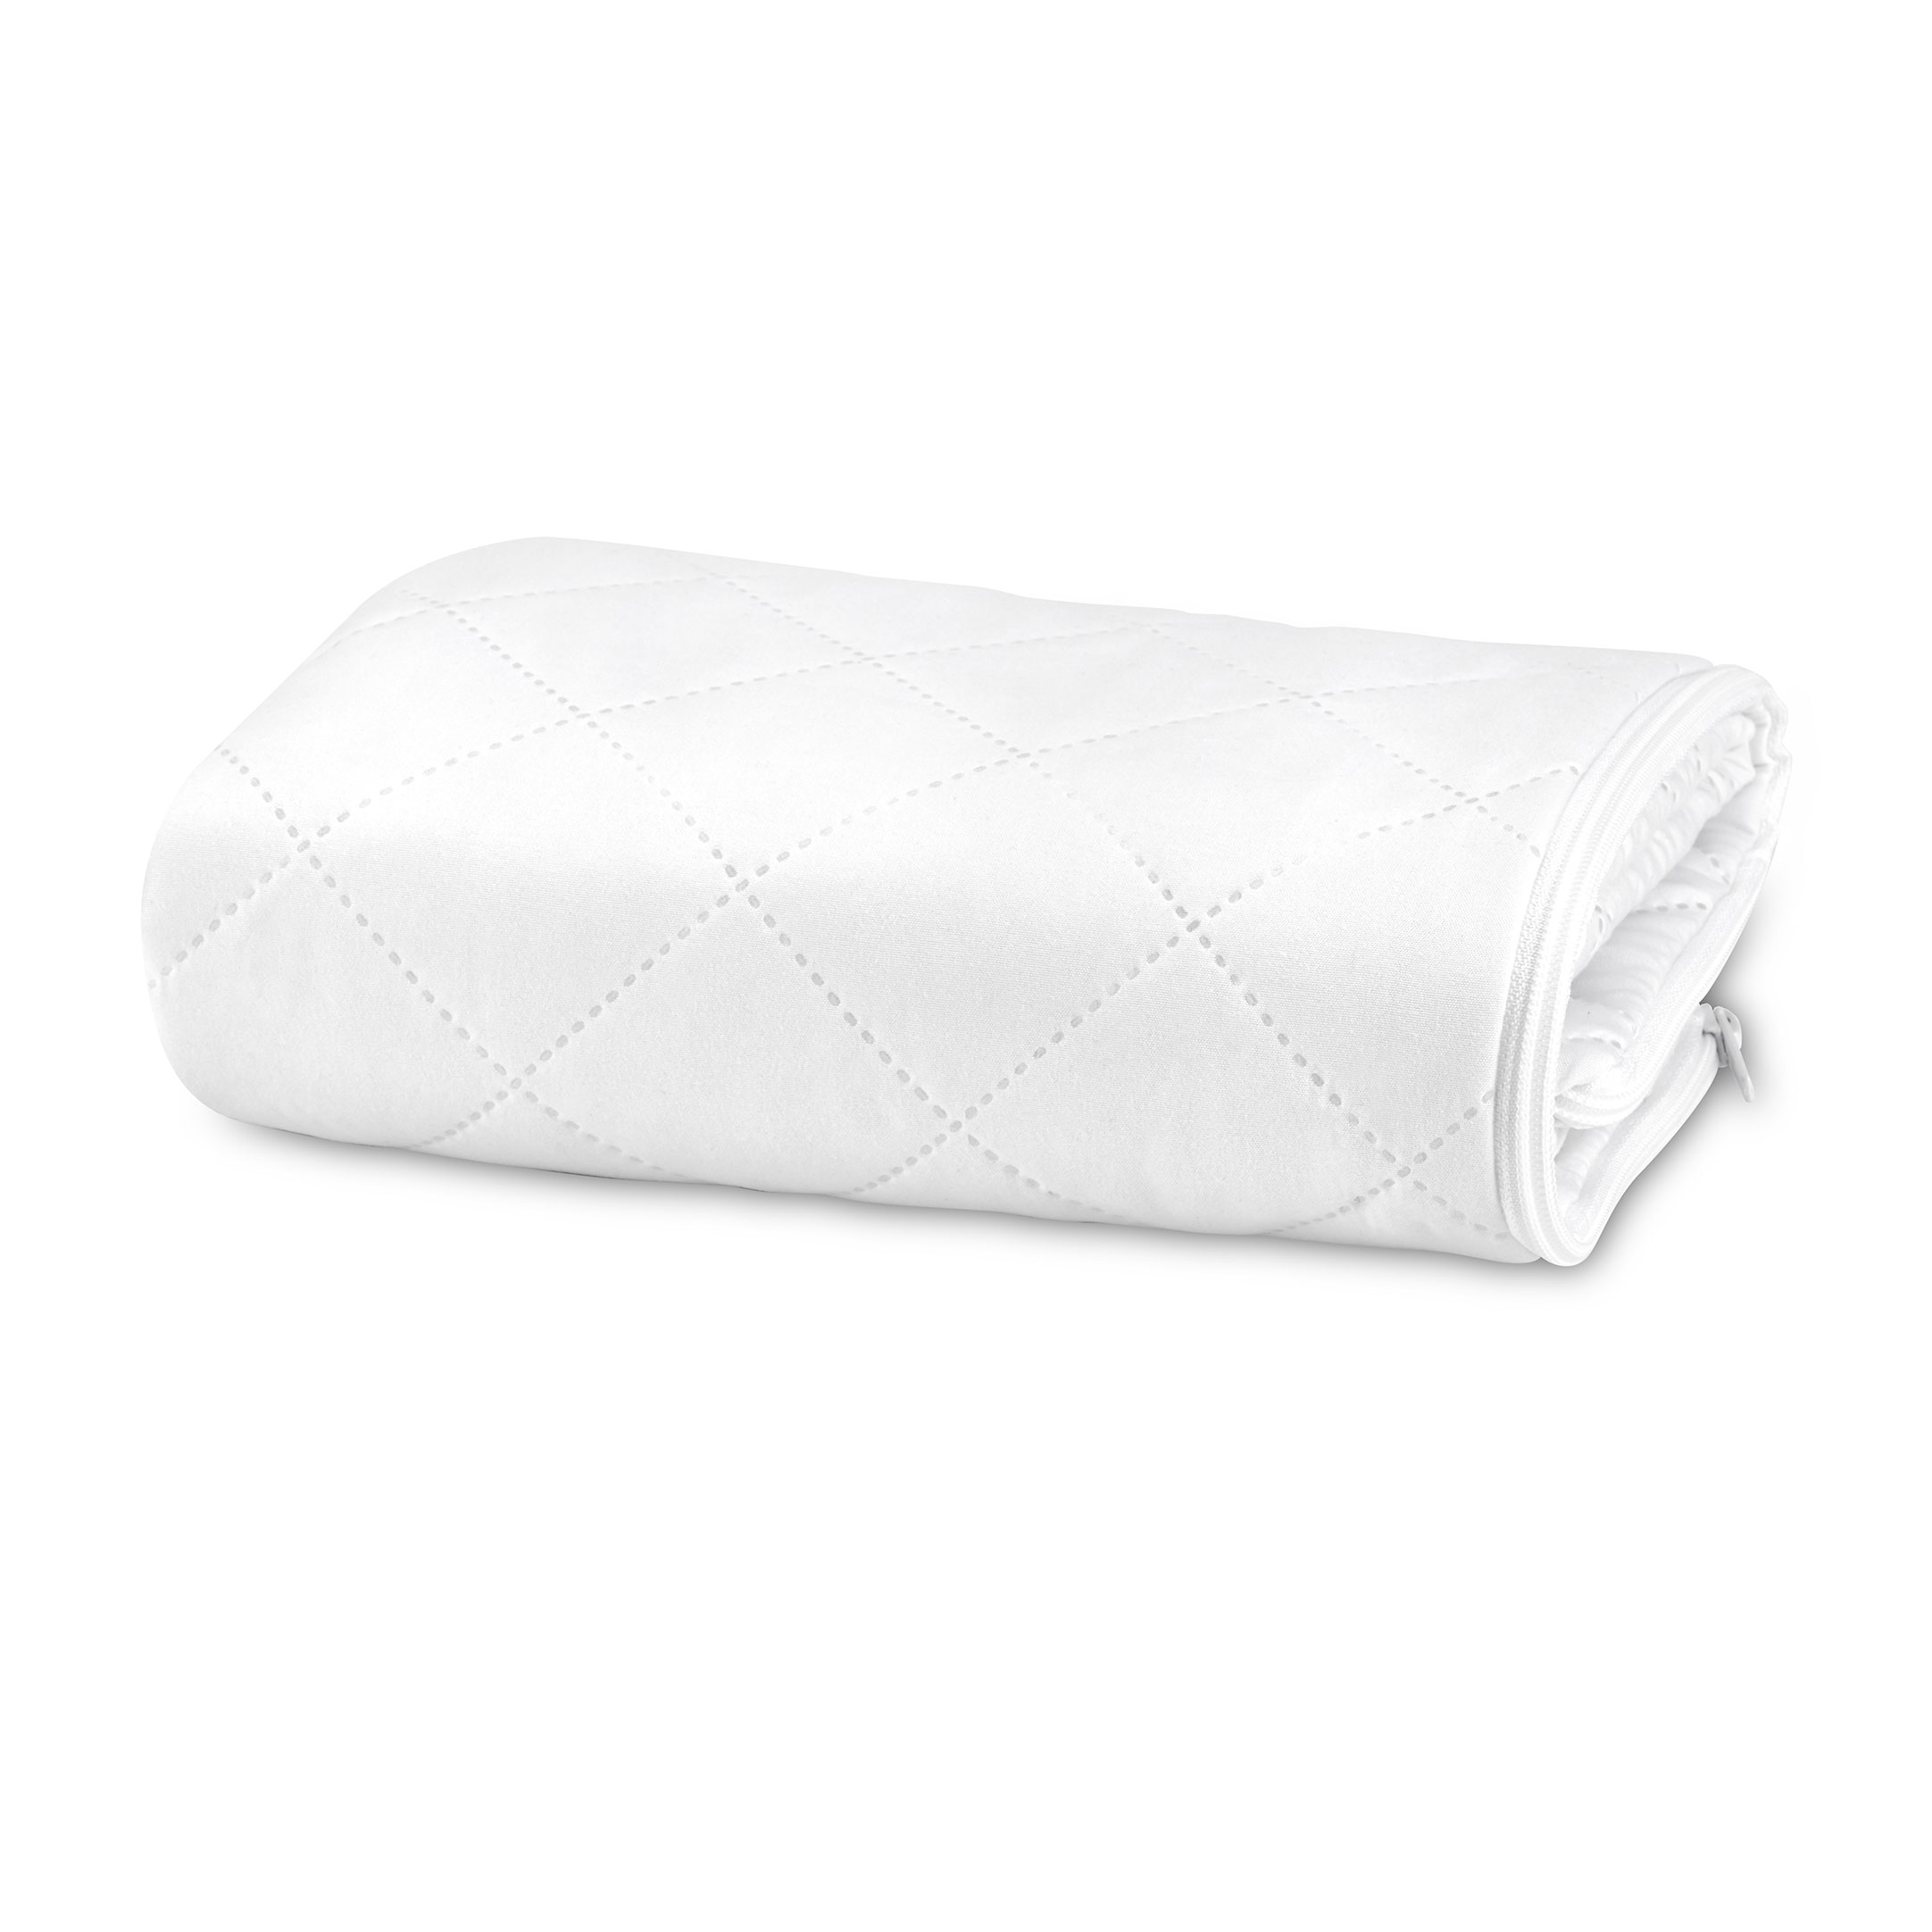 protectors cotton designs allergy home hfd b products pillow bay fashion hypoallergenic premium pack great protector kids zippered